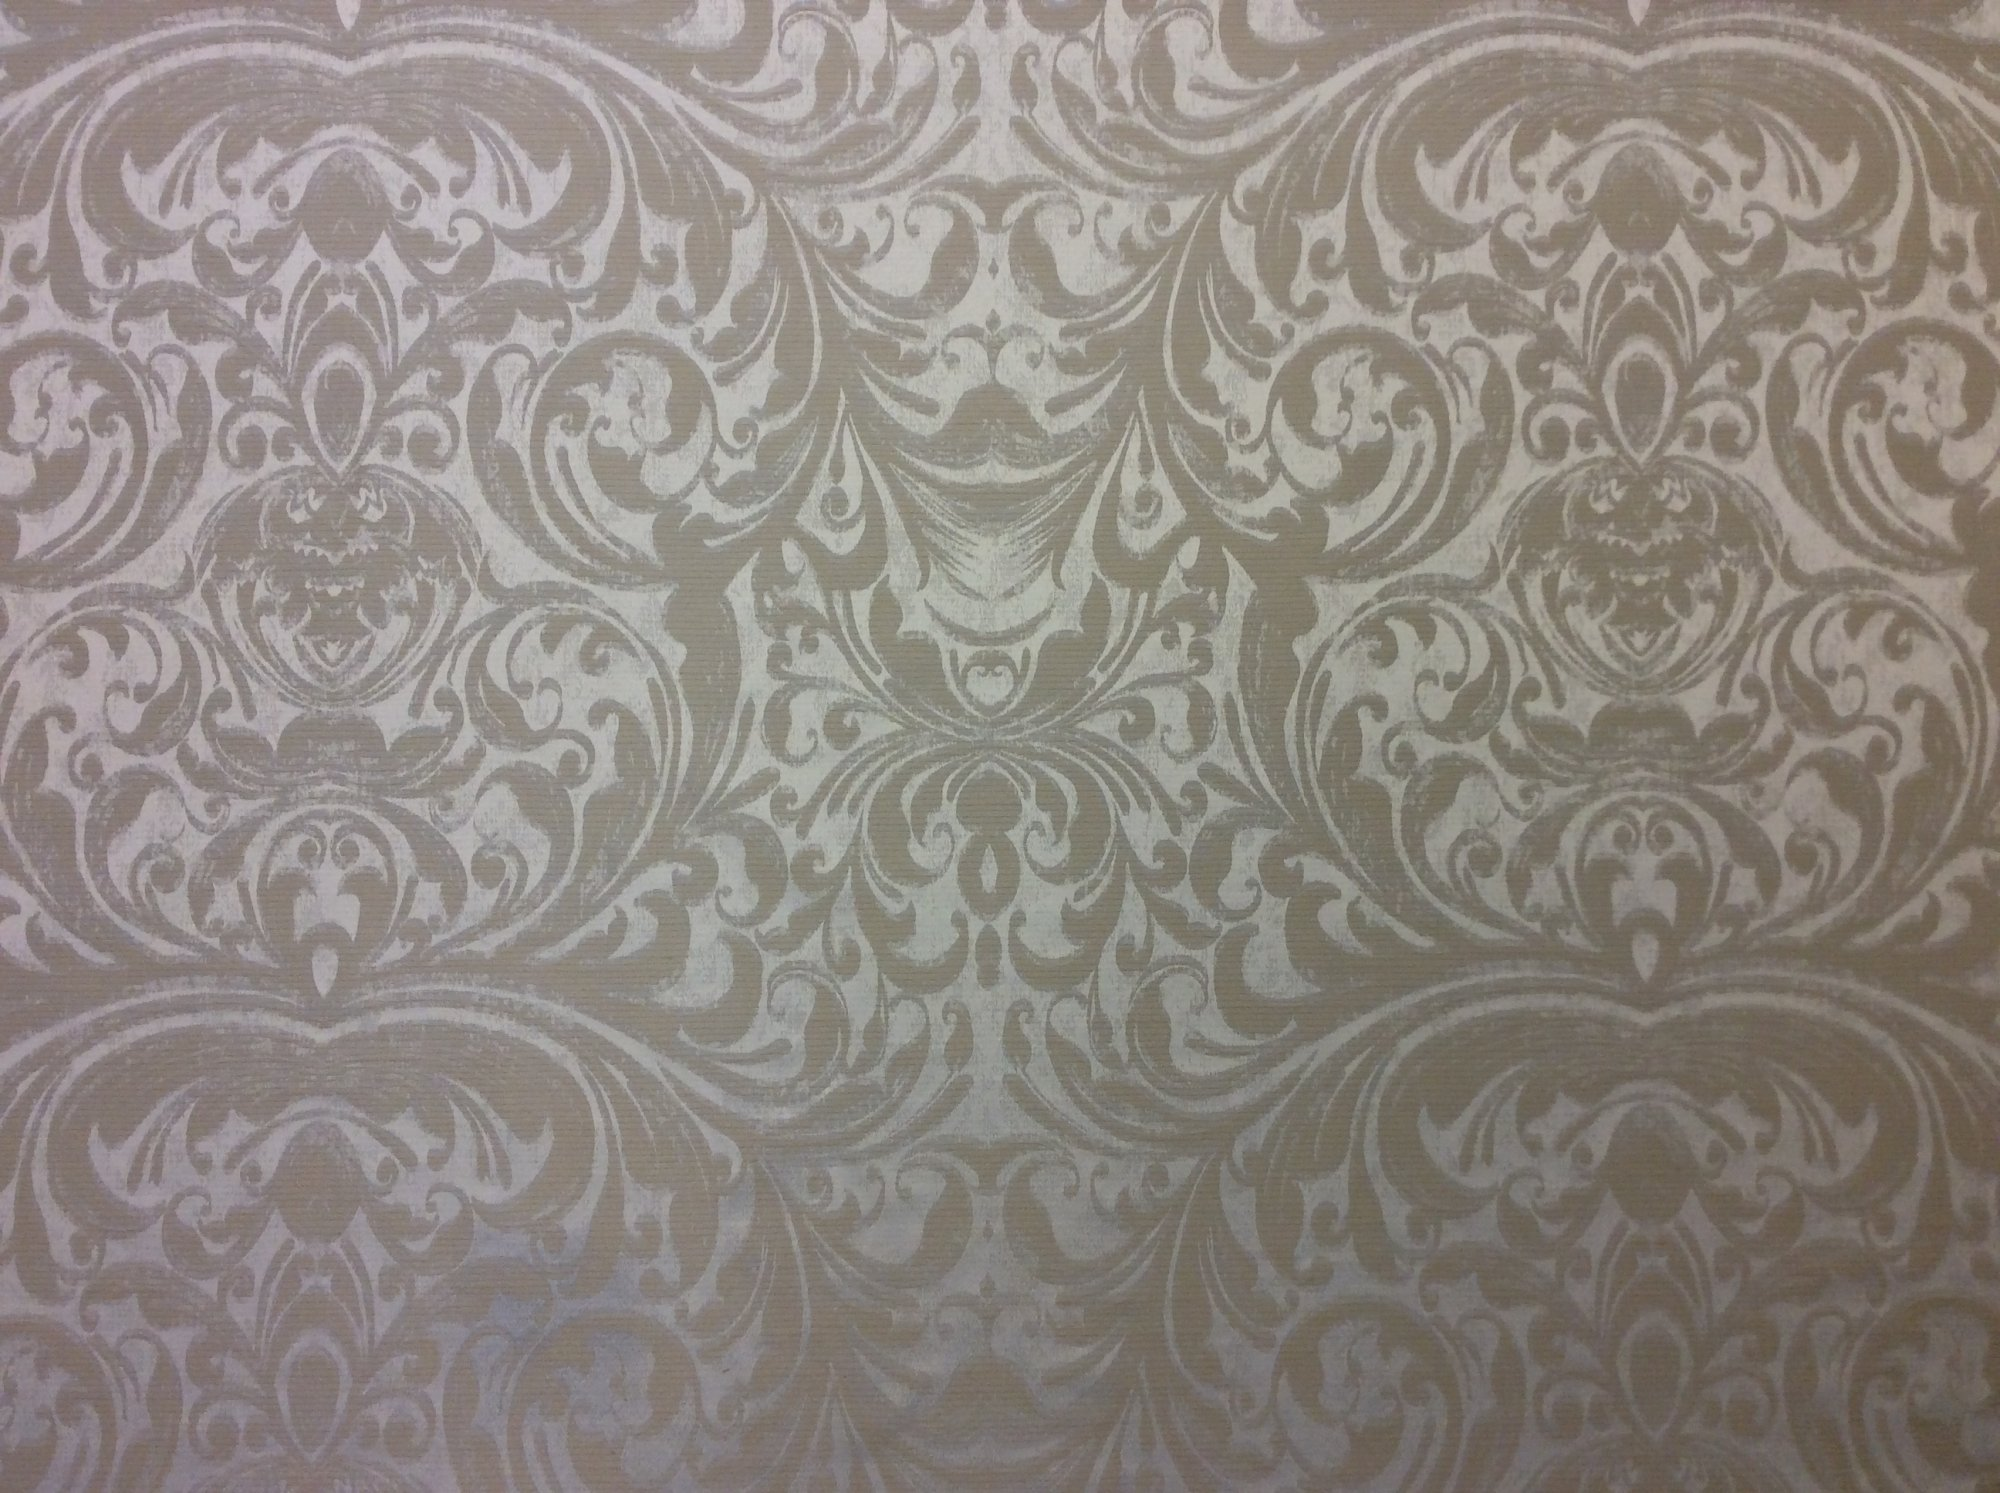 Large Scale Damask Transitional Drapery Light Weight Upholstery Home Dec Fabric CAR1809